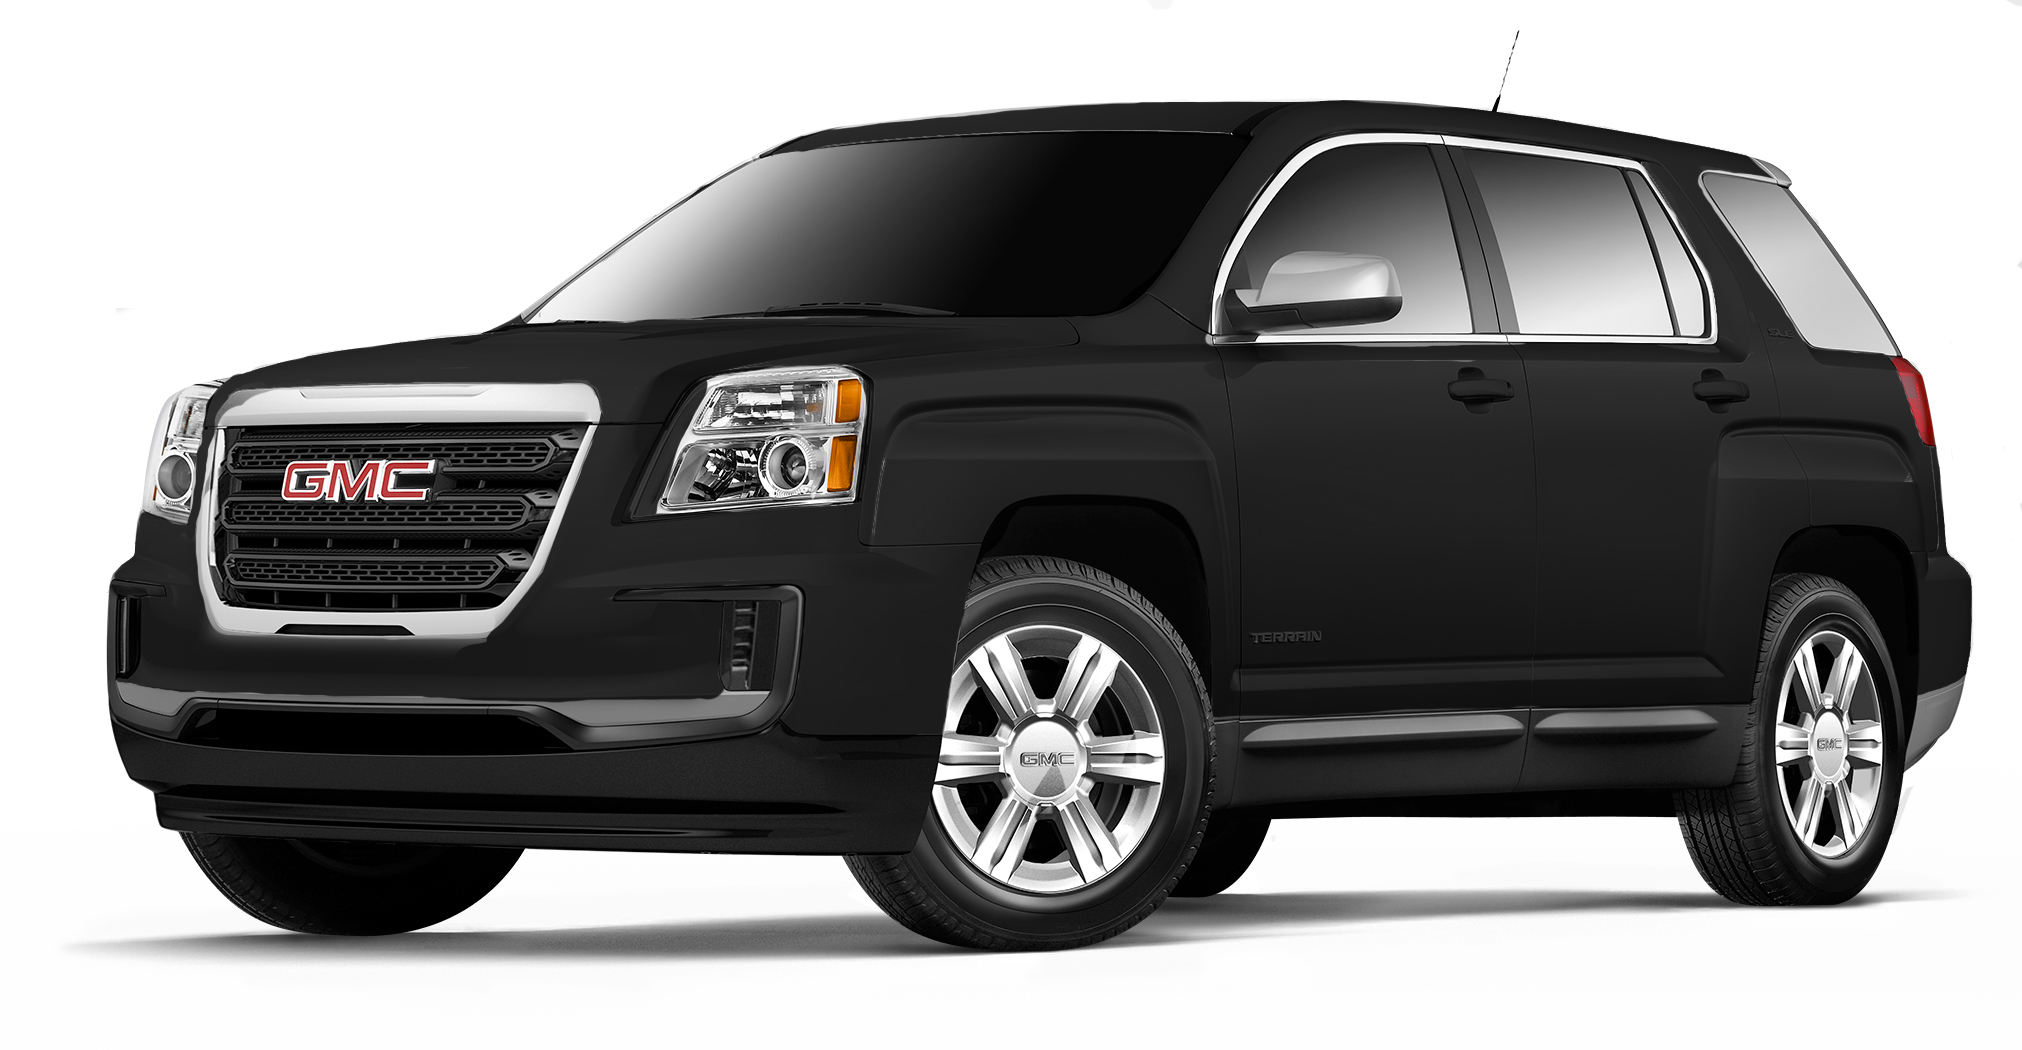 2017 GMC Terrain Winnipeg Ebony